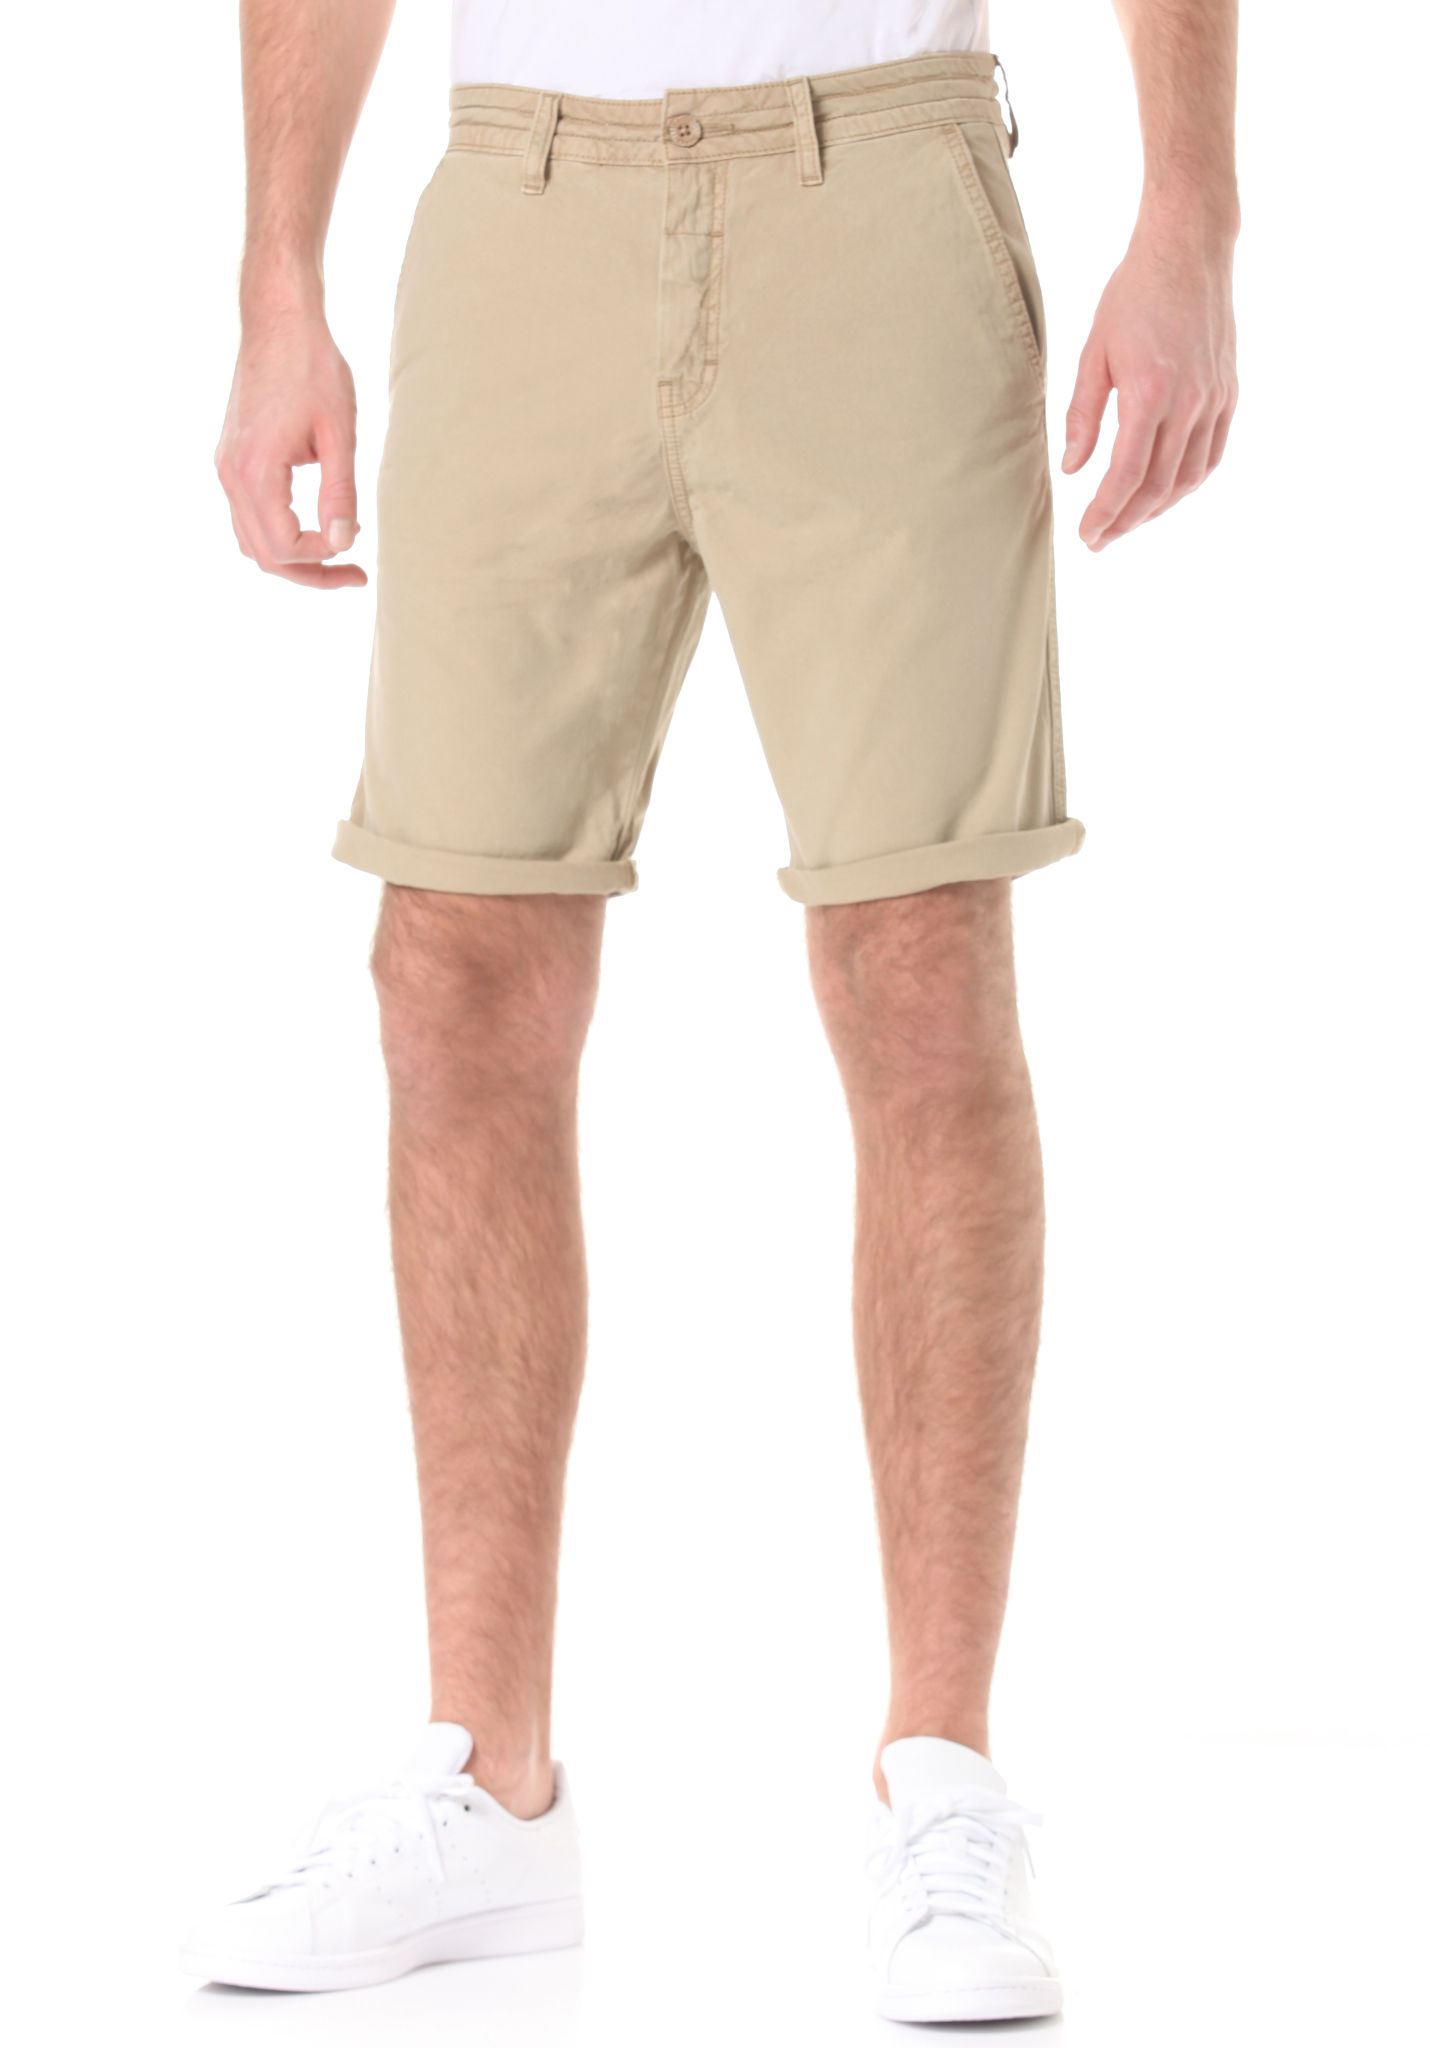 BENCH Lyrical - Chino Shorts for Men - Beige - Planet Sports